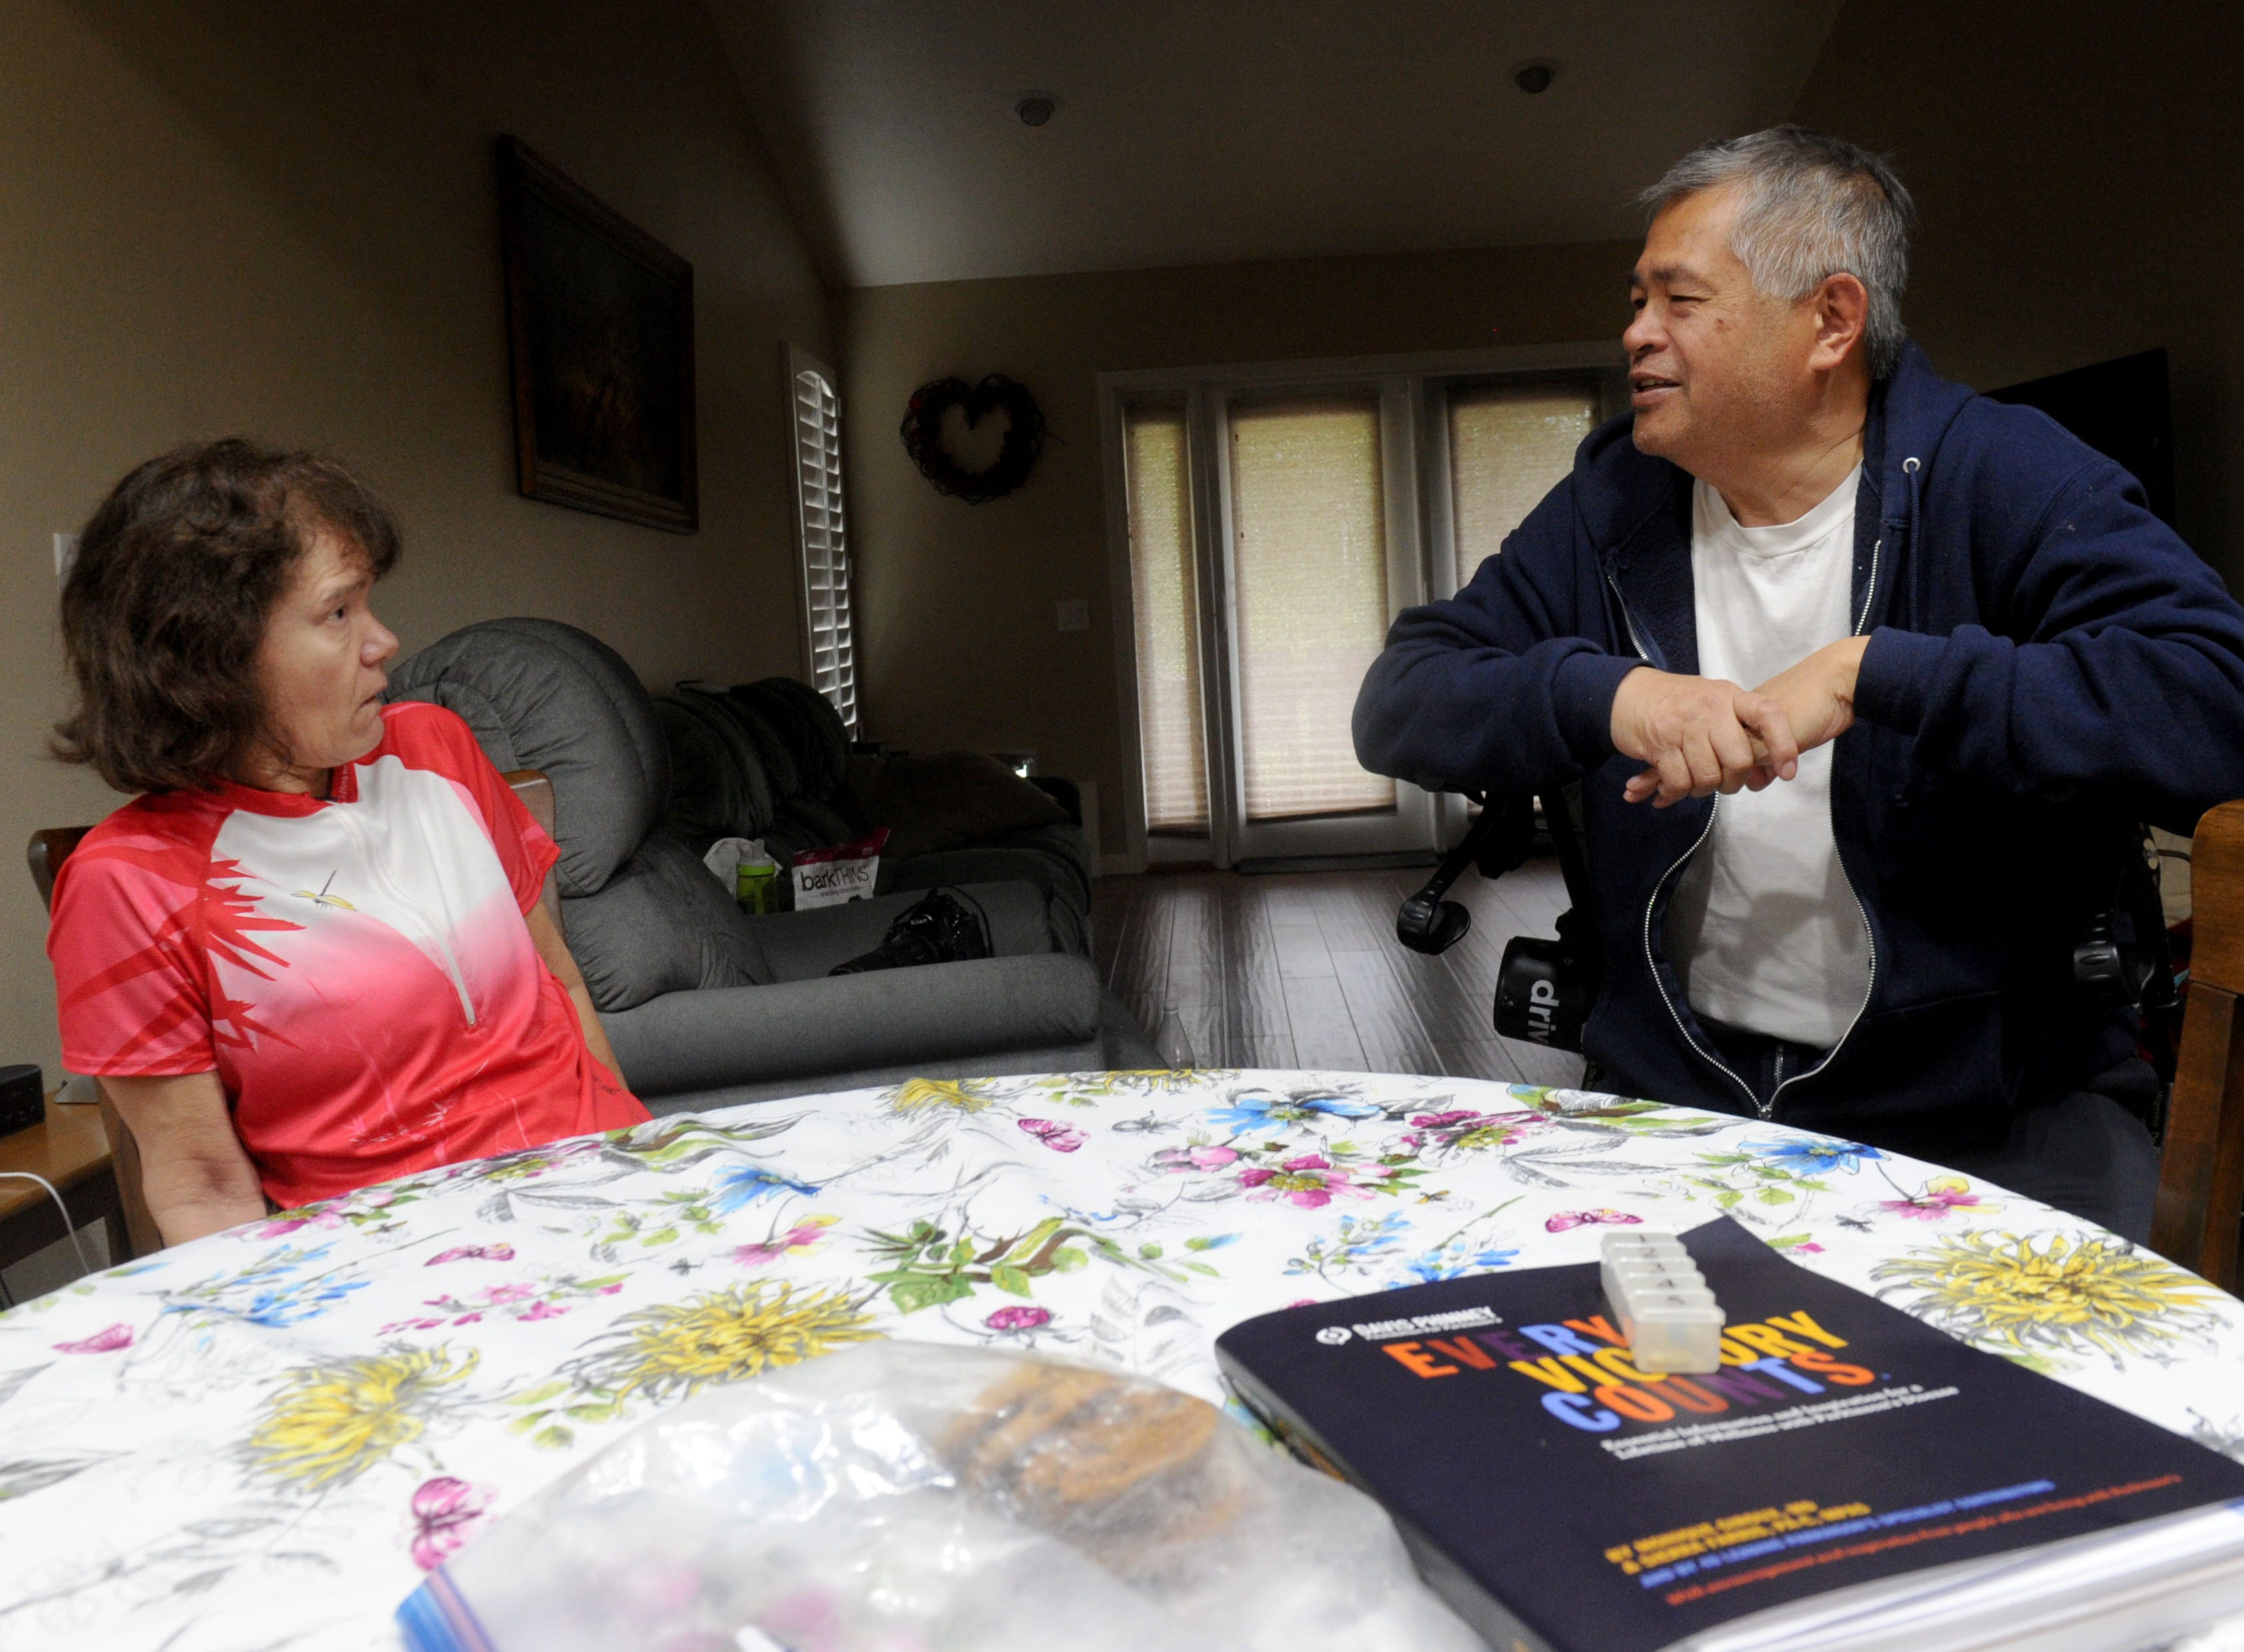 Debbie and Frank Jew talk about their day. Debbie Jew was diagnosed 13 years ago with Parkinson's disease. Frank is her caregiver.